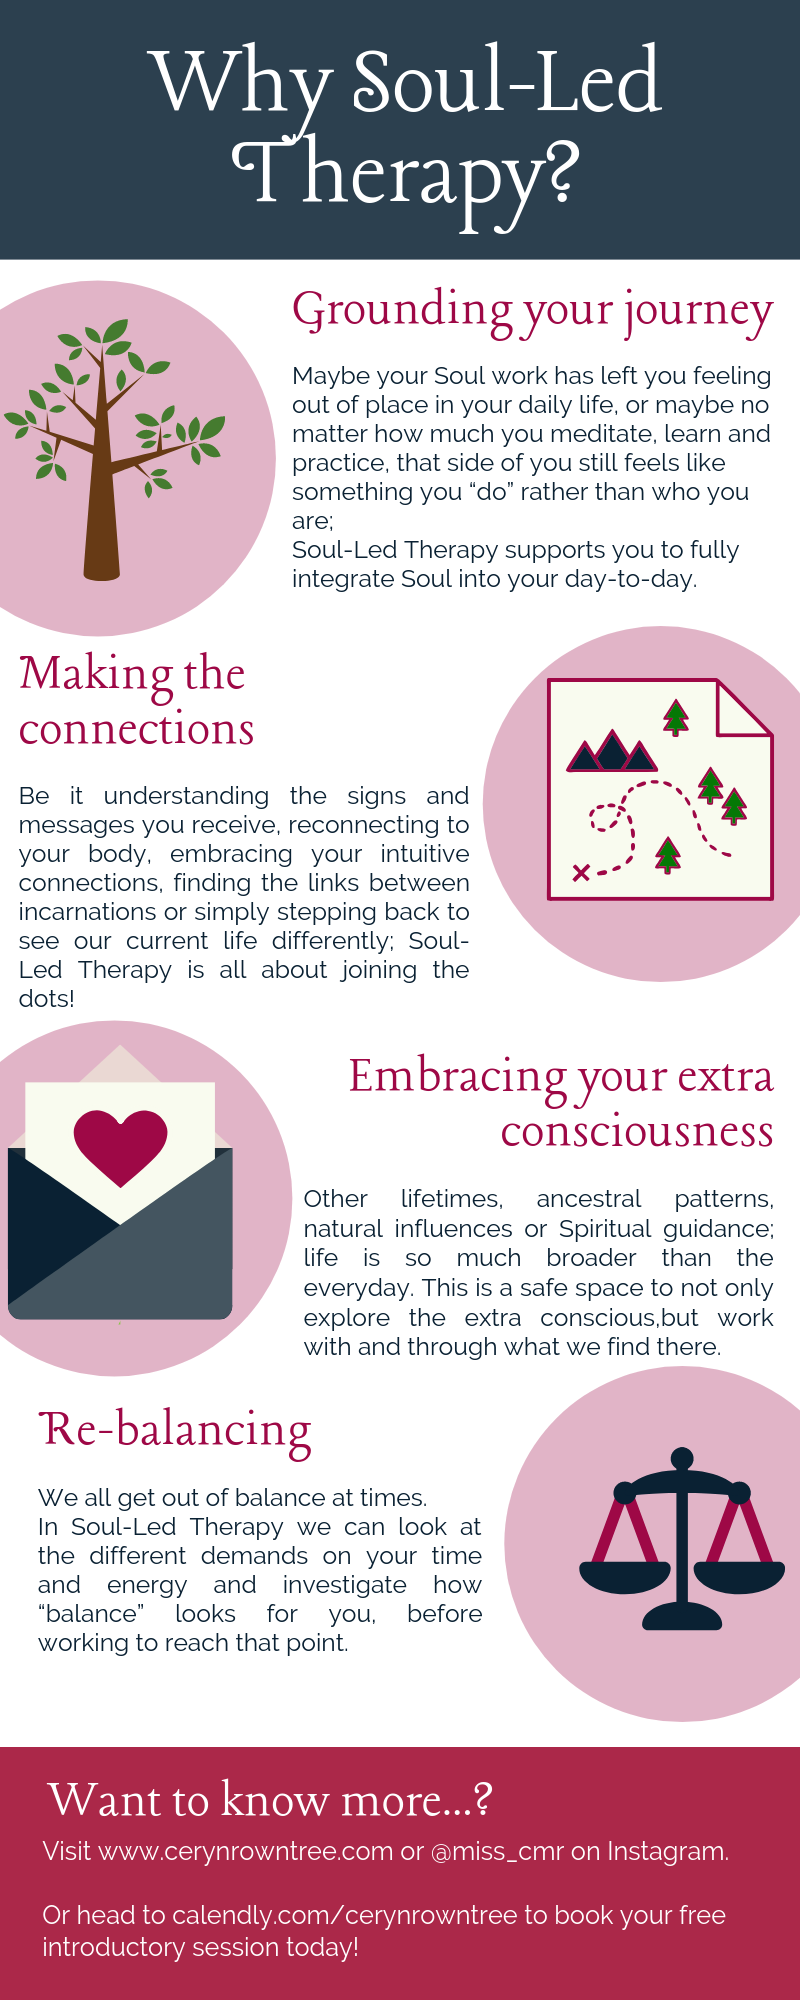 Infographic outlining the headlines of this post... What can you bring to Soul-Led Therapy? Image created in Canva by Ceryn Rowntree.